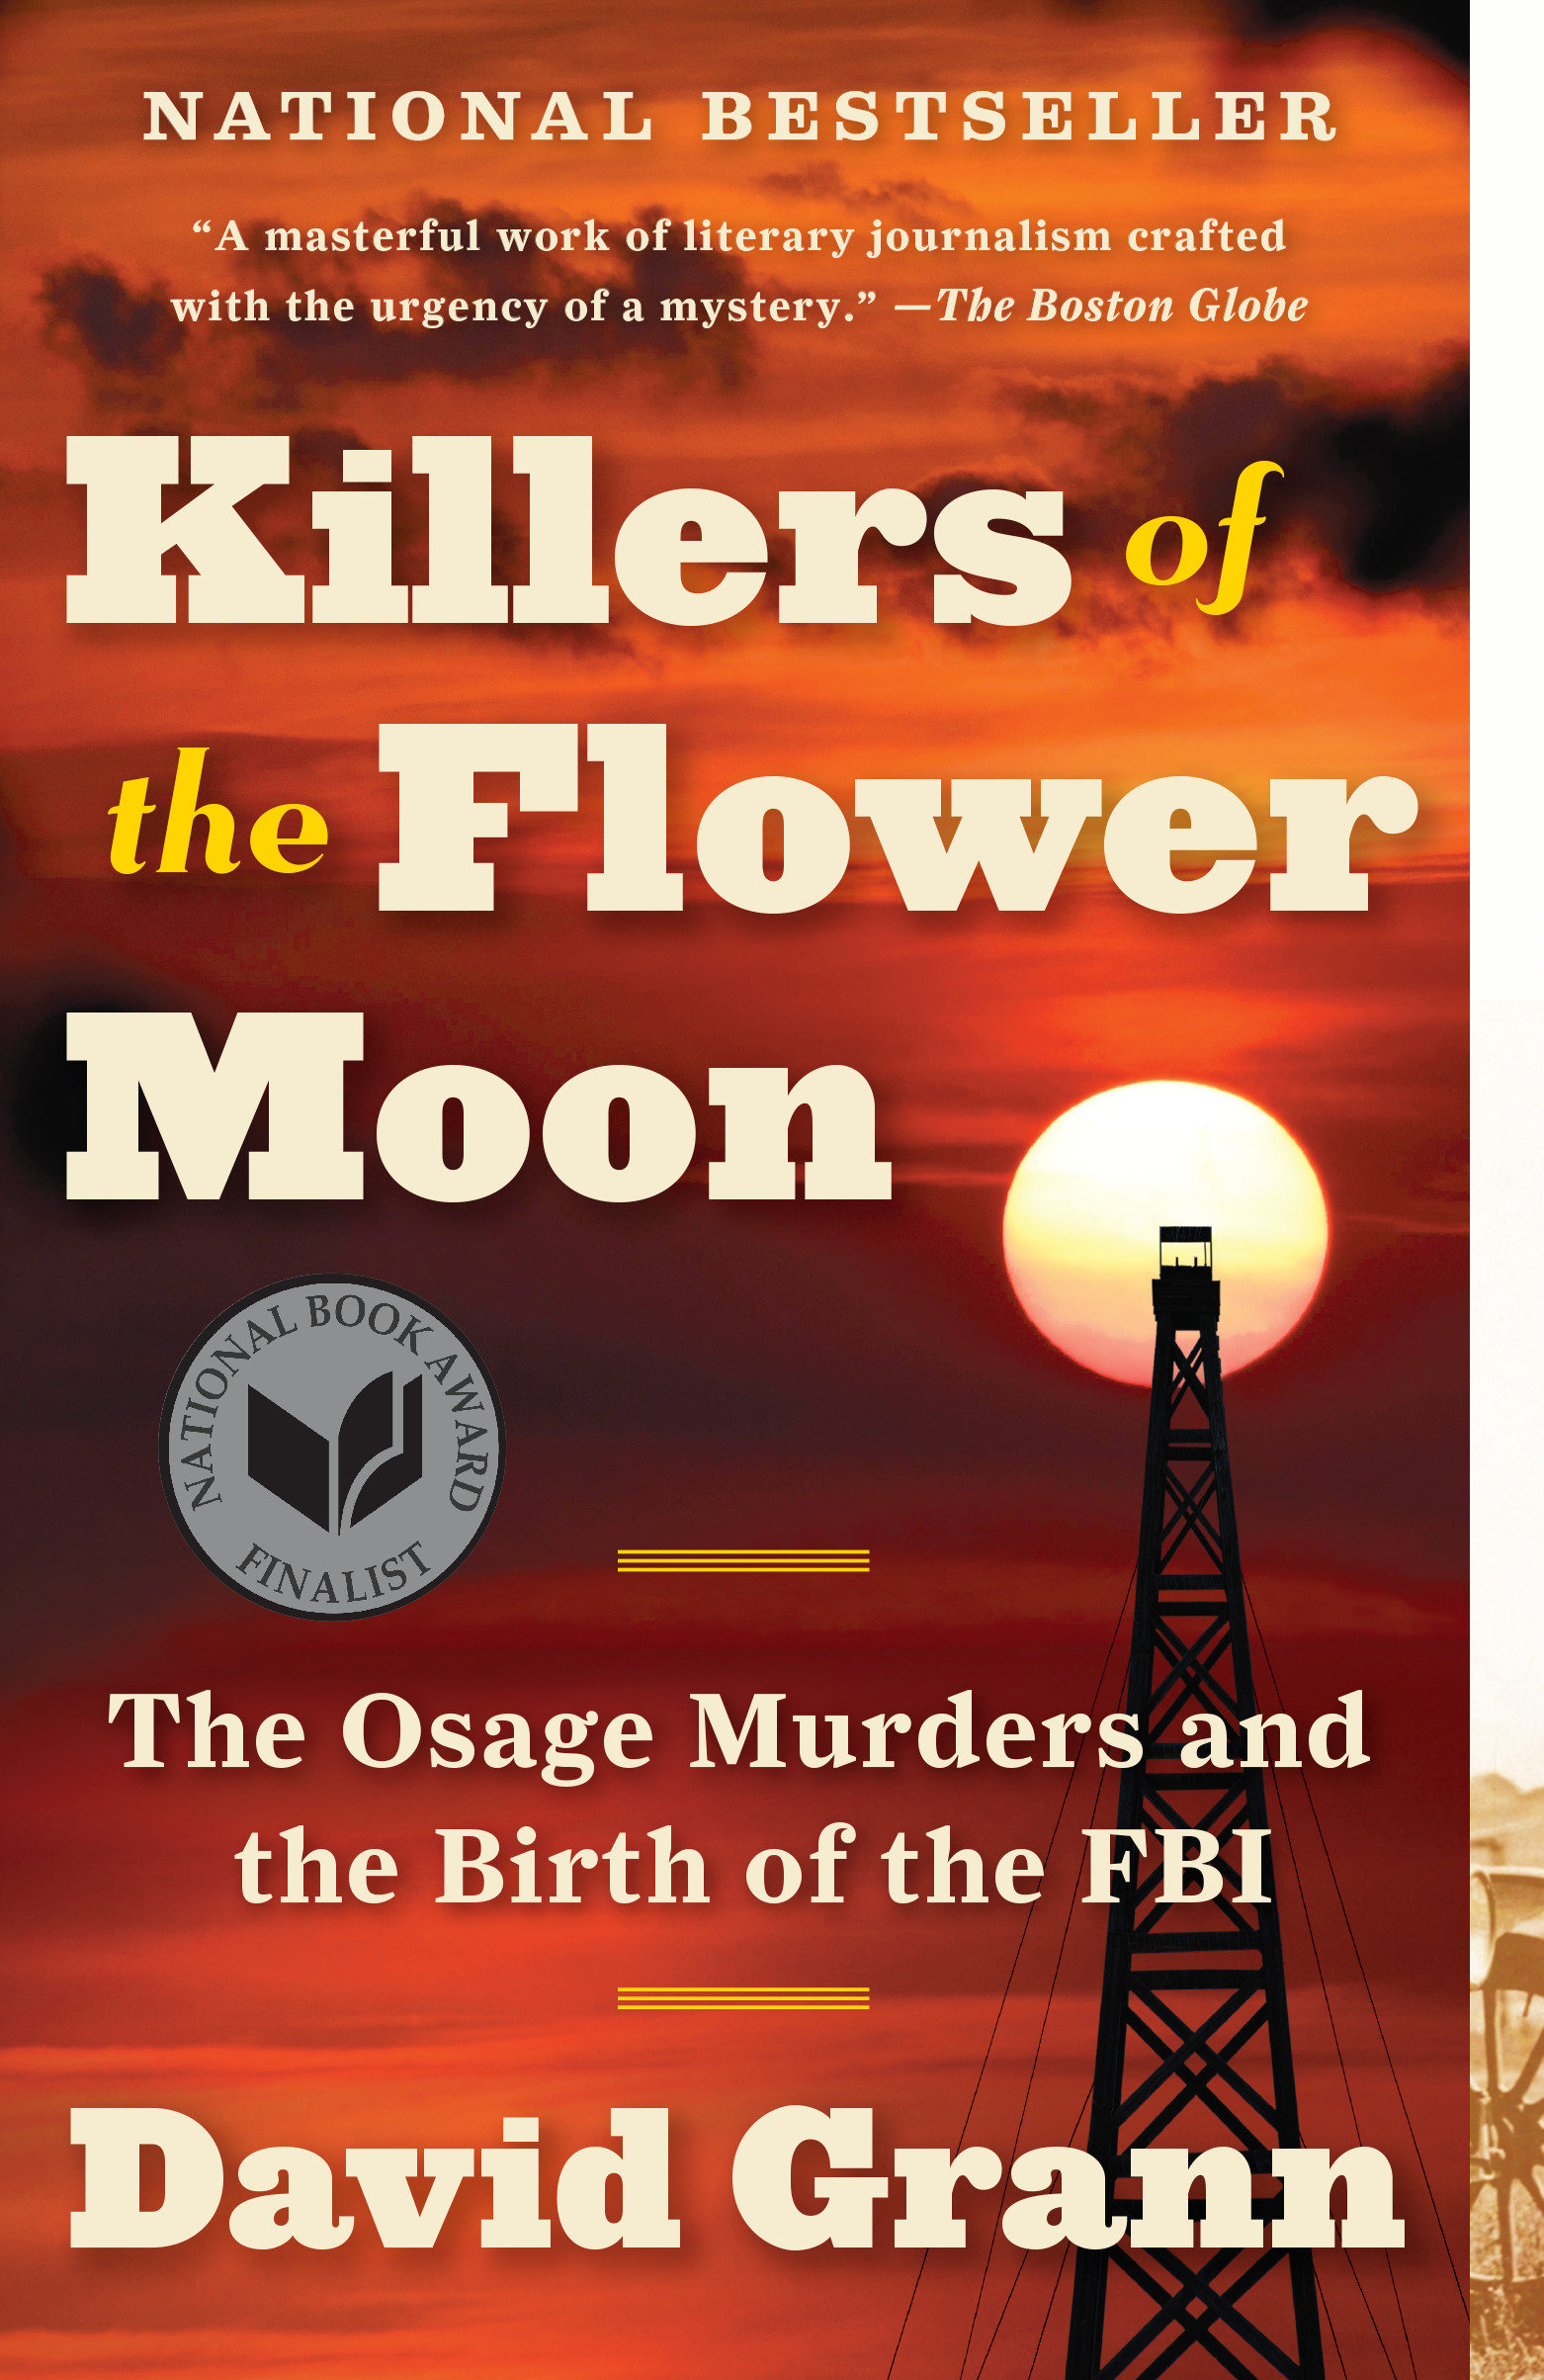 Killers of the Flower Moon [eBook] : the Osage murders and the birth of the FBI